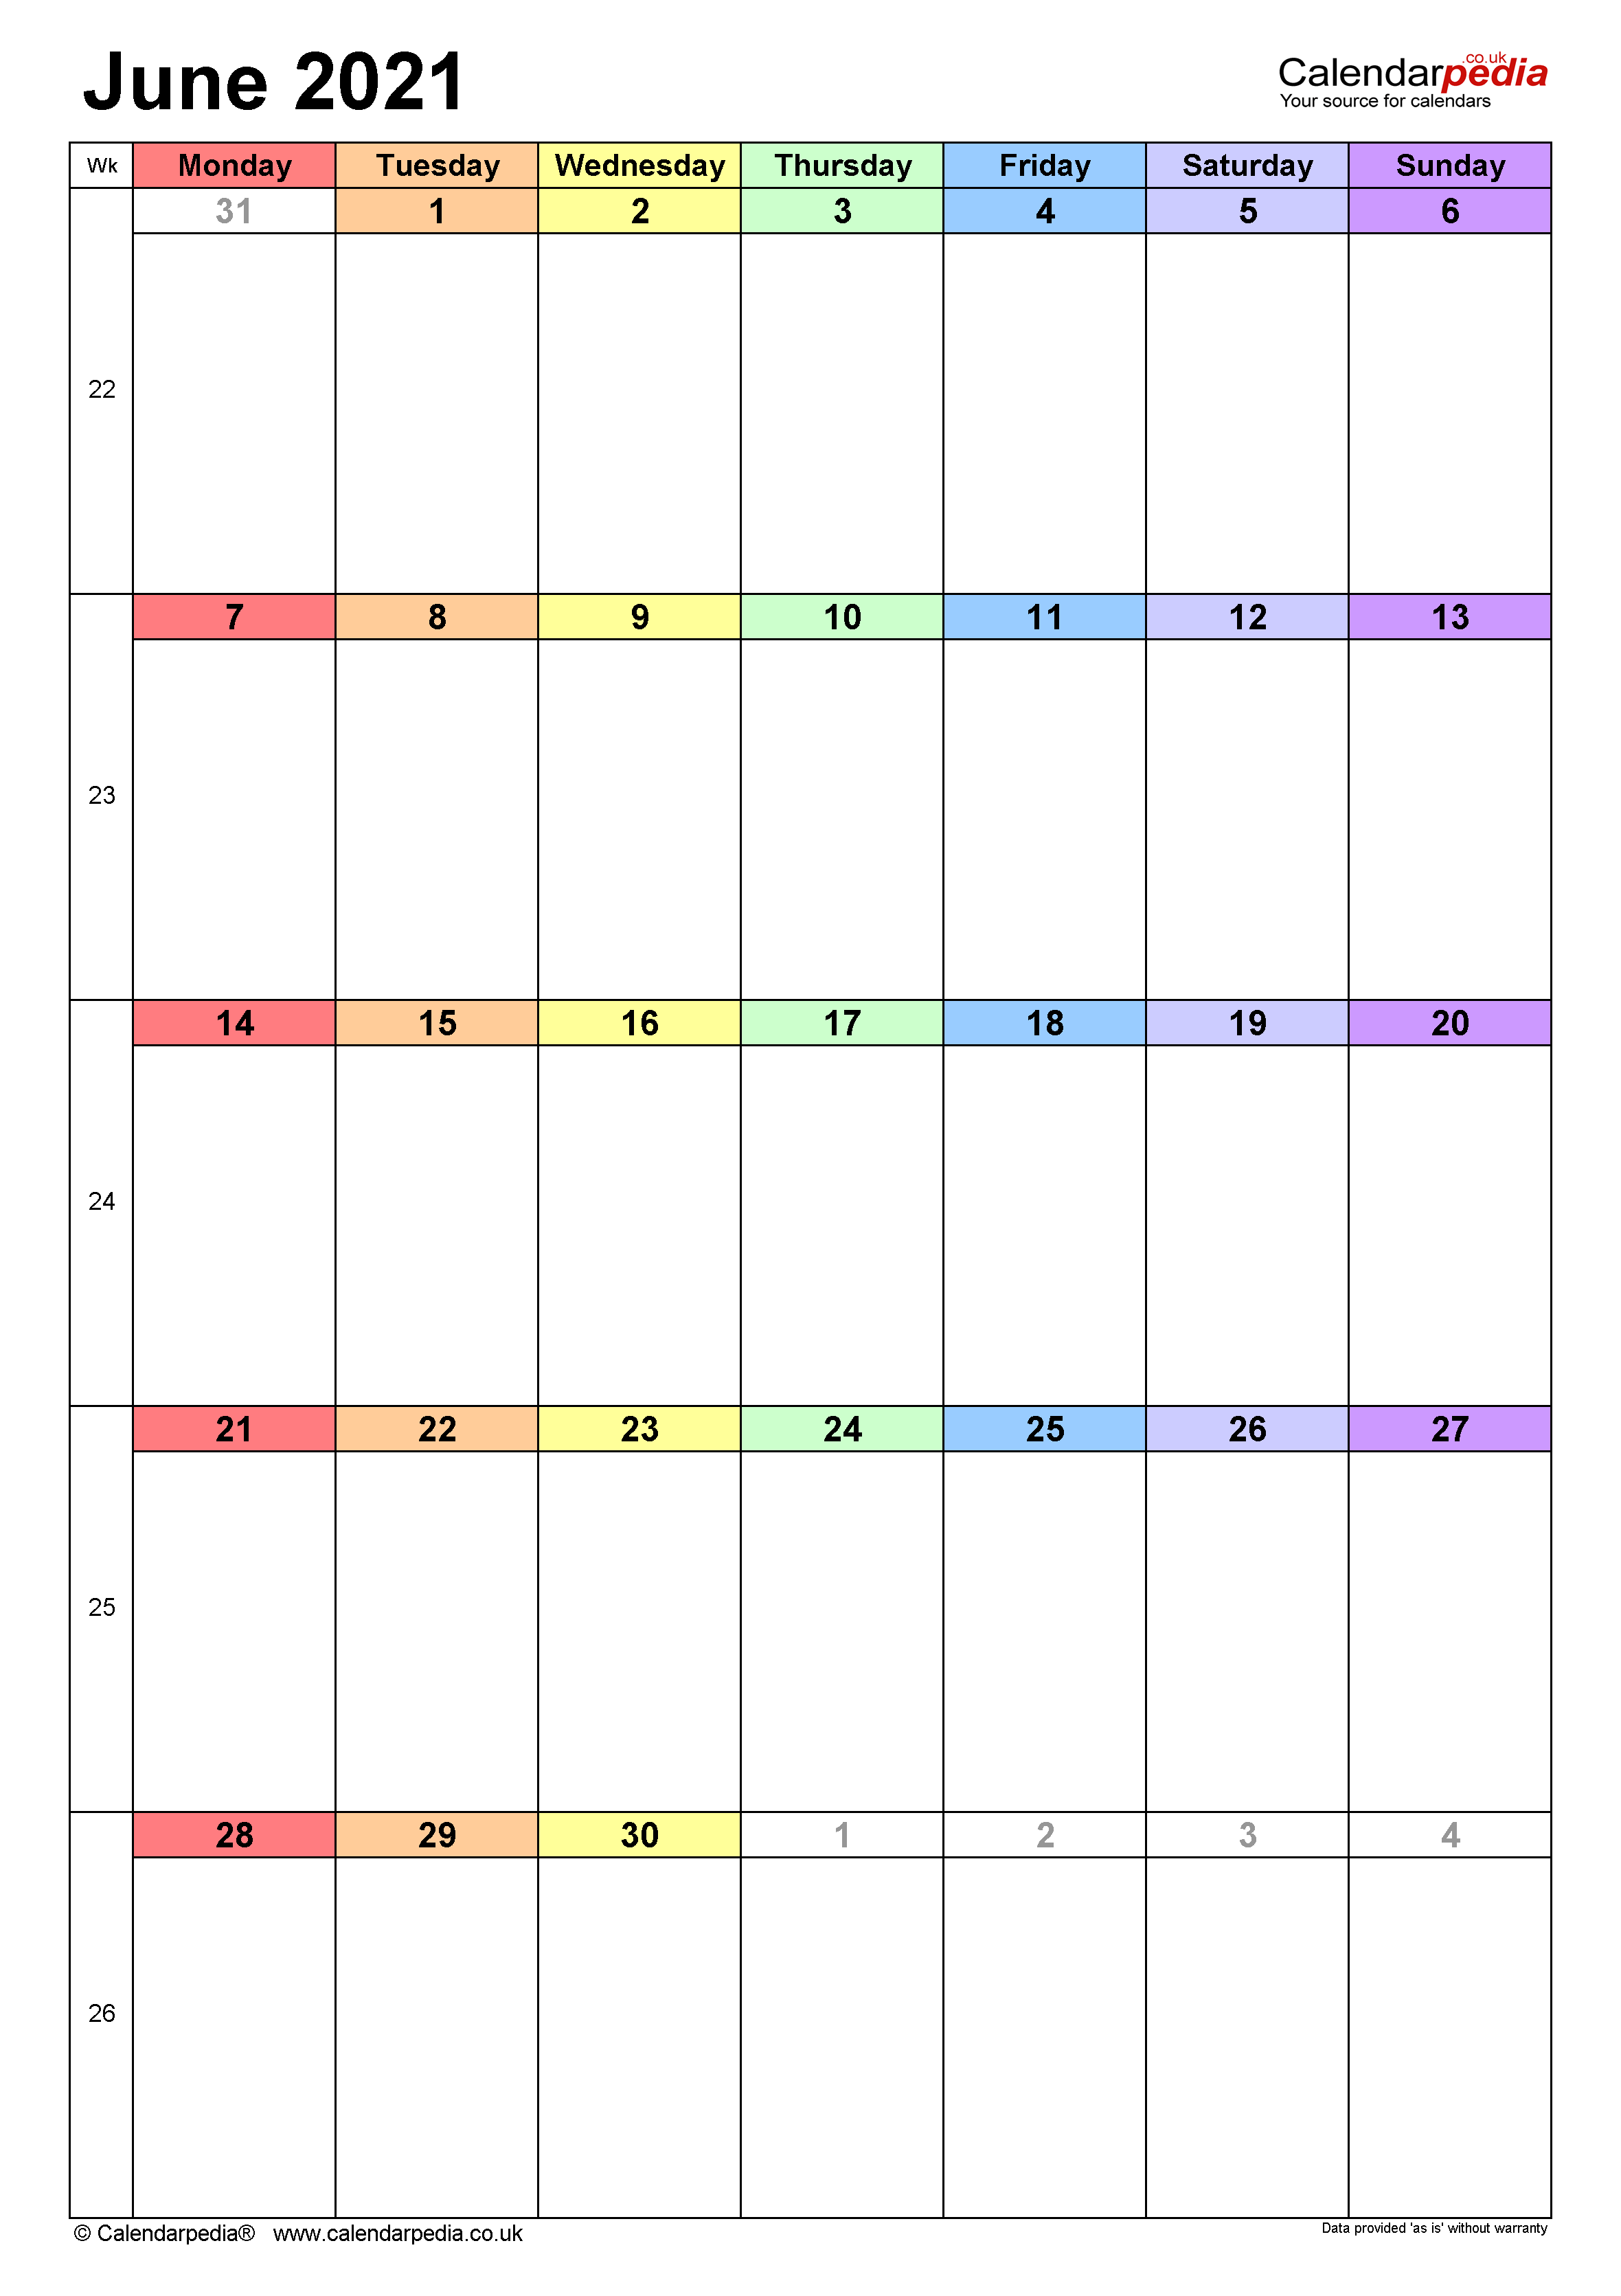 Calendar June 2021 (UK) with Excel, Word and PDF templates